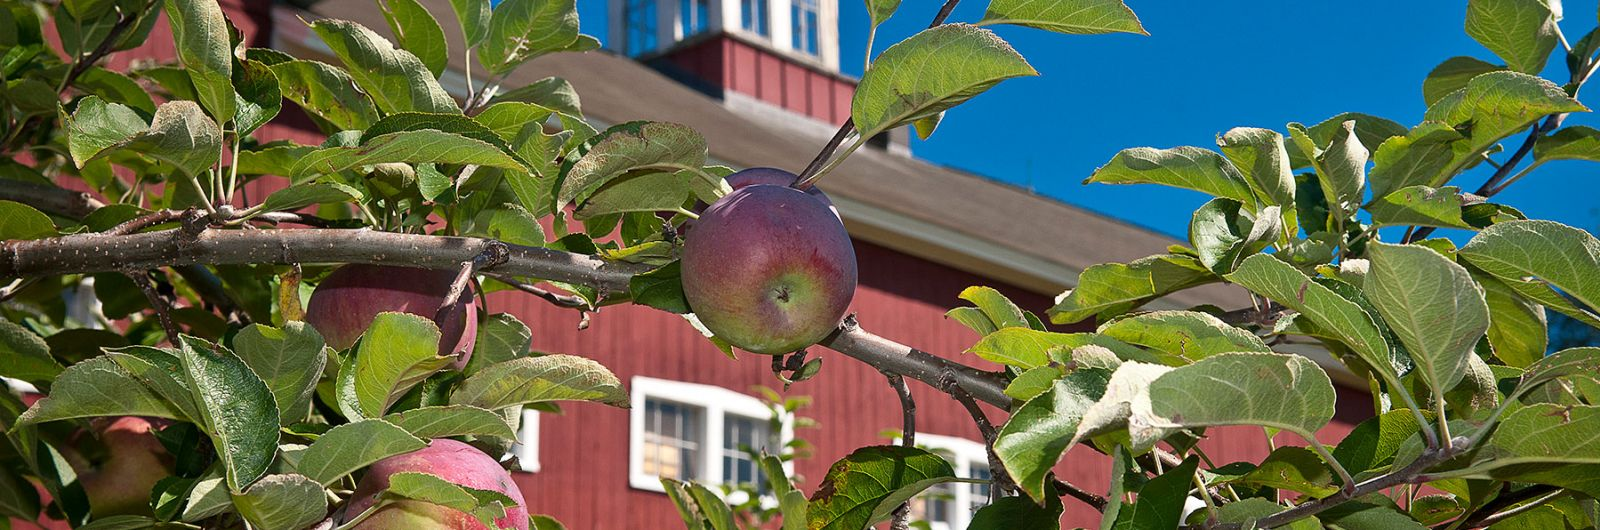 Cold Spring Orchard building and apple trees